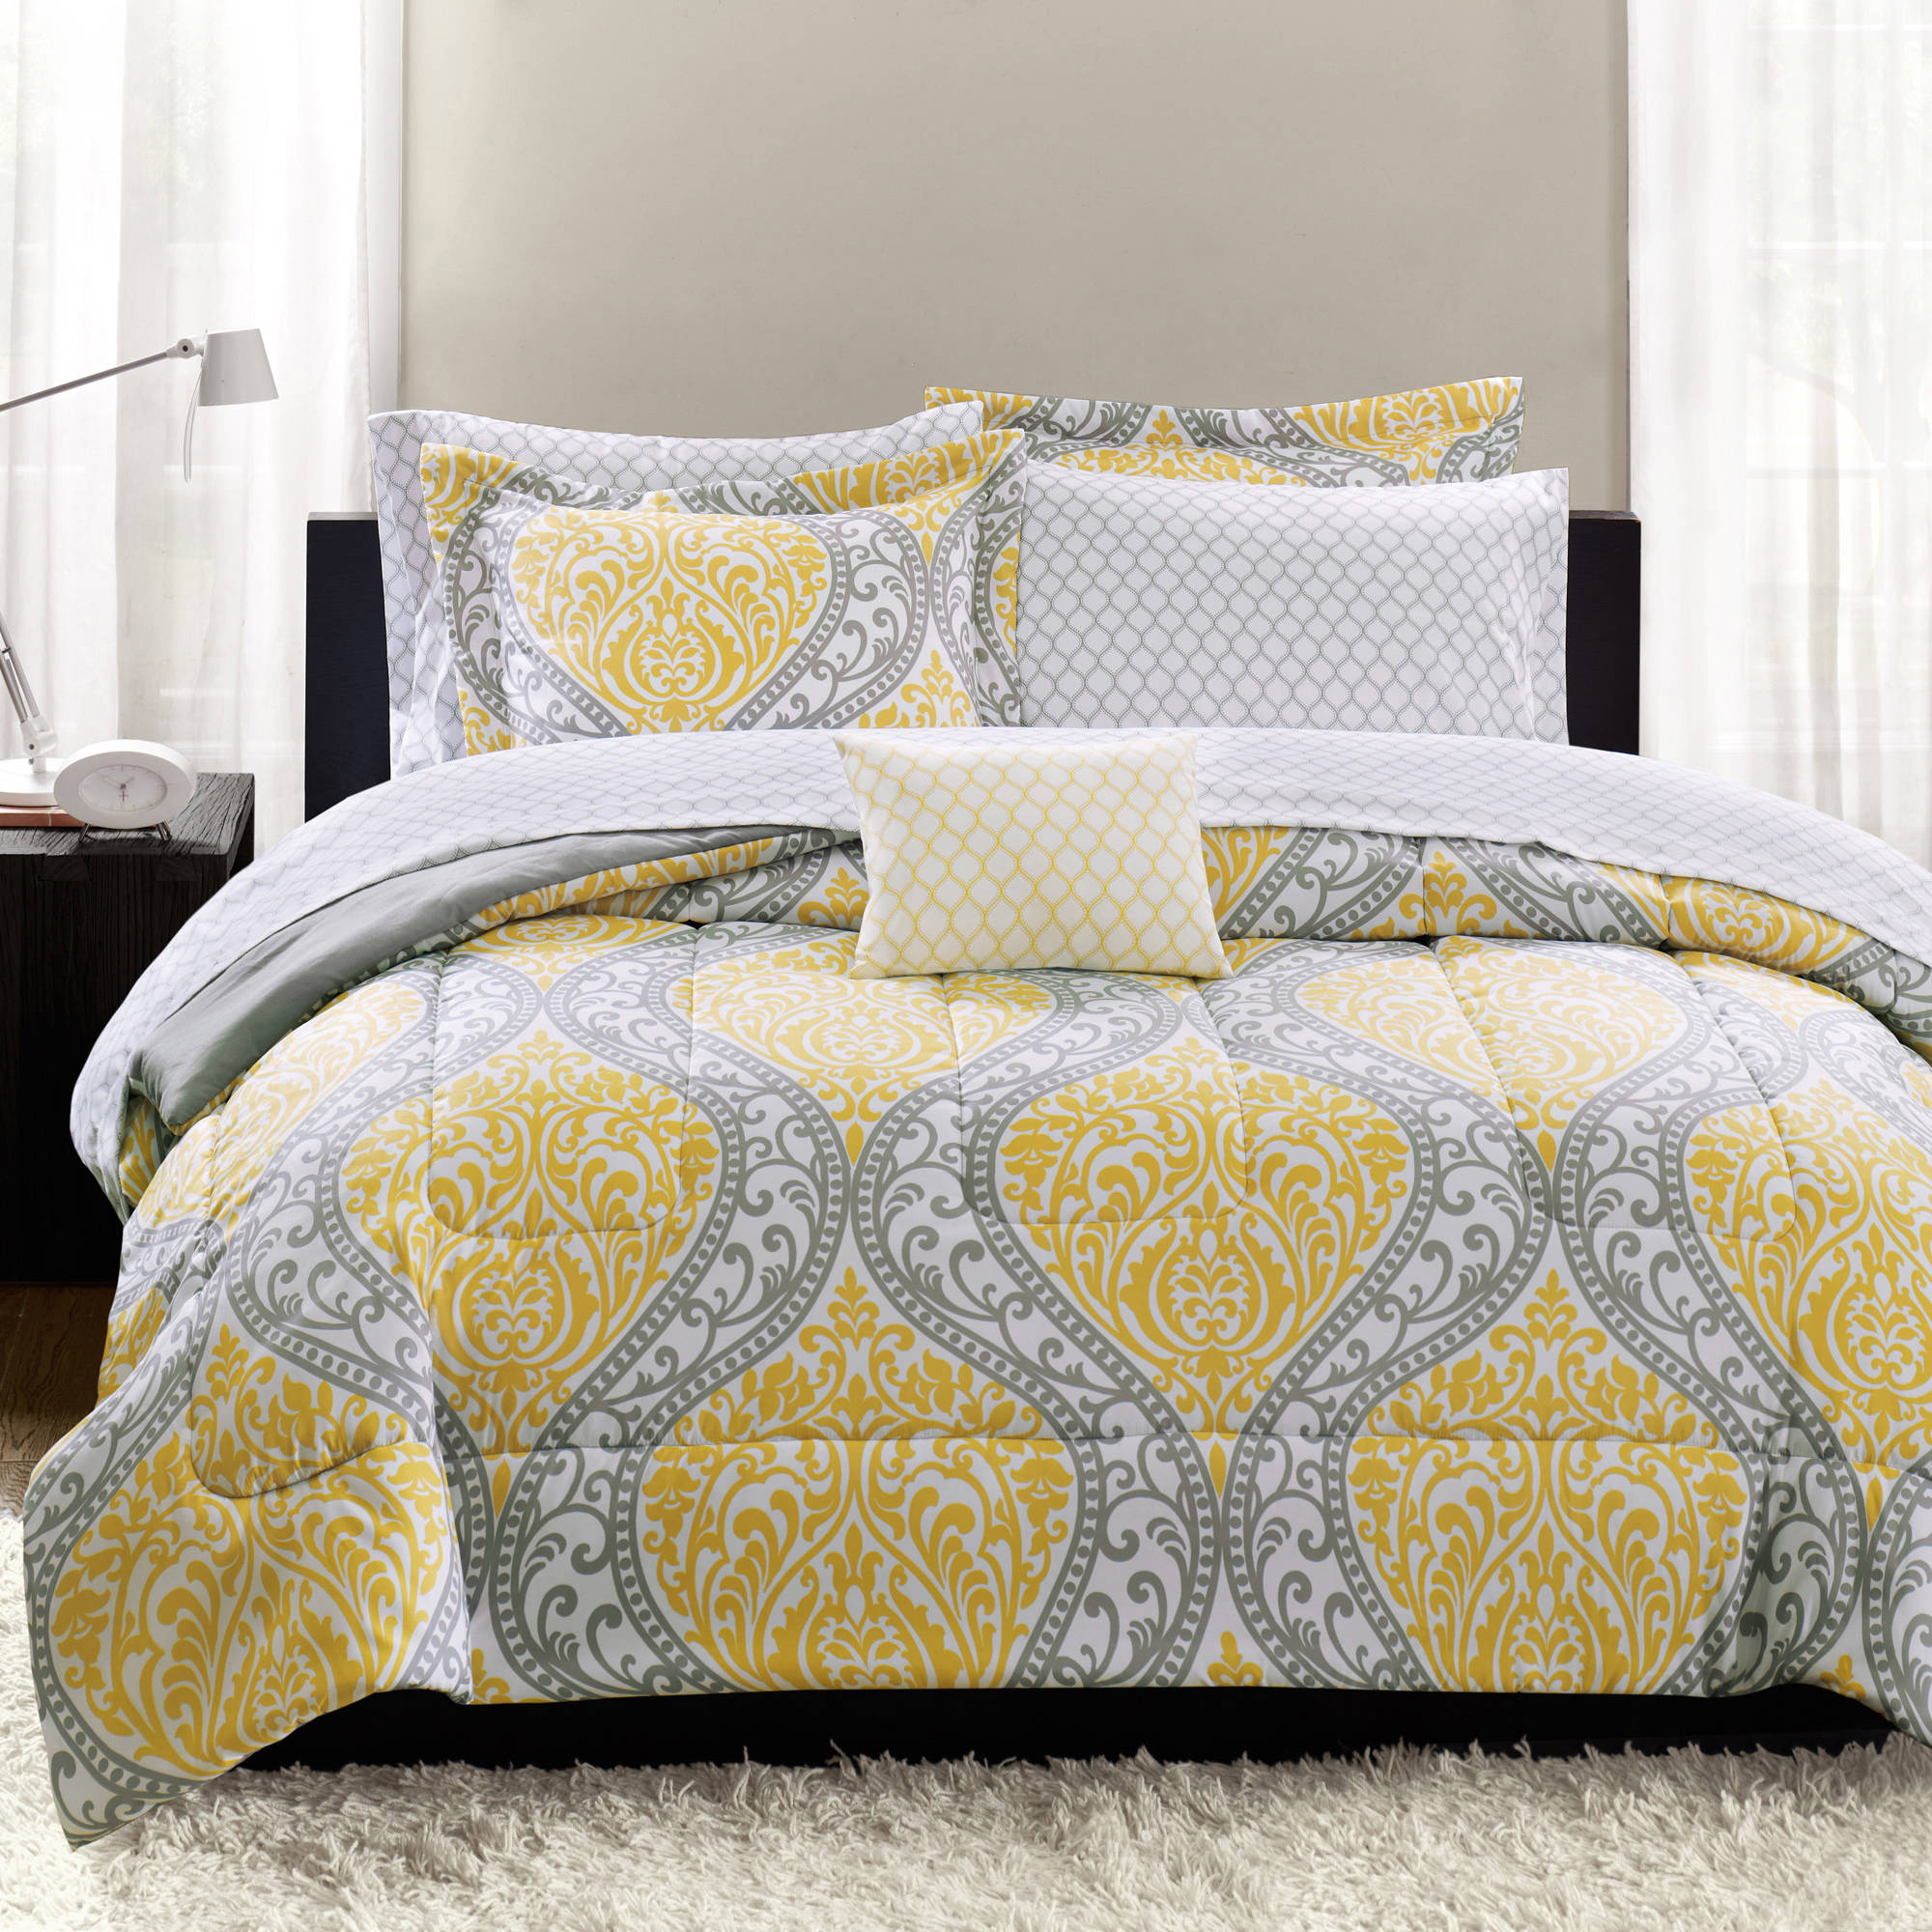 Mainstays Yellow Damask Coordinated Bedding Set Bed in a Bag - Walmart.com